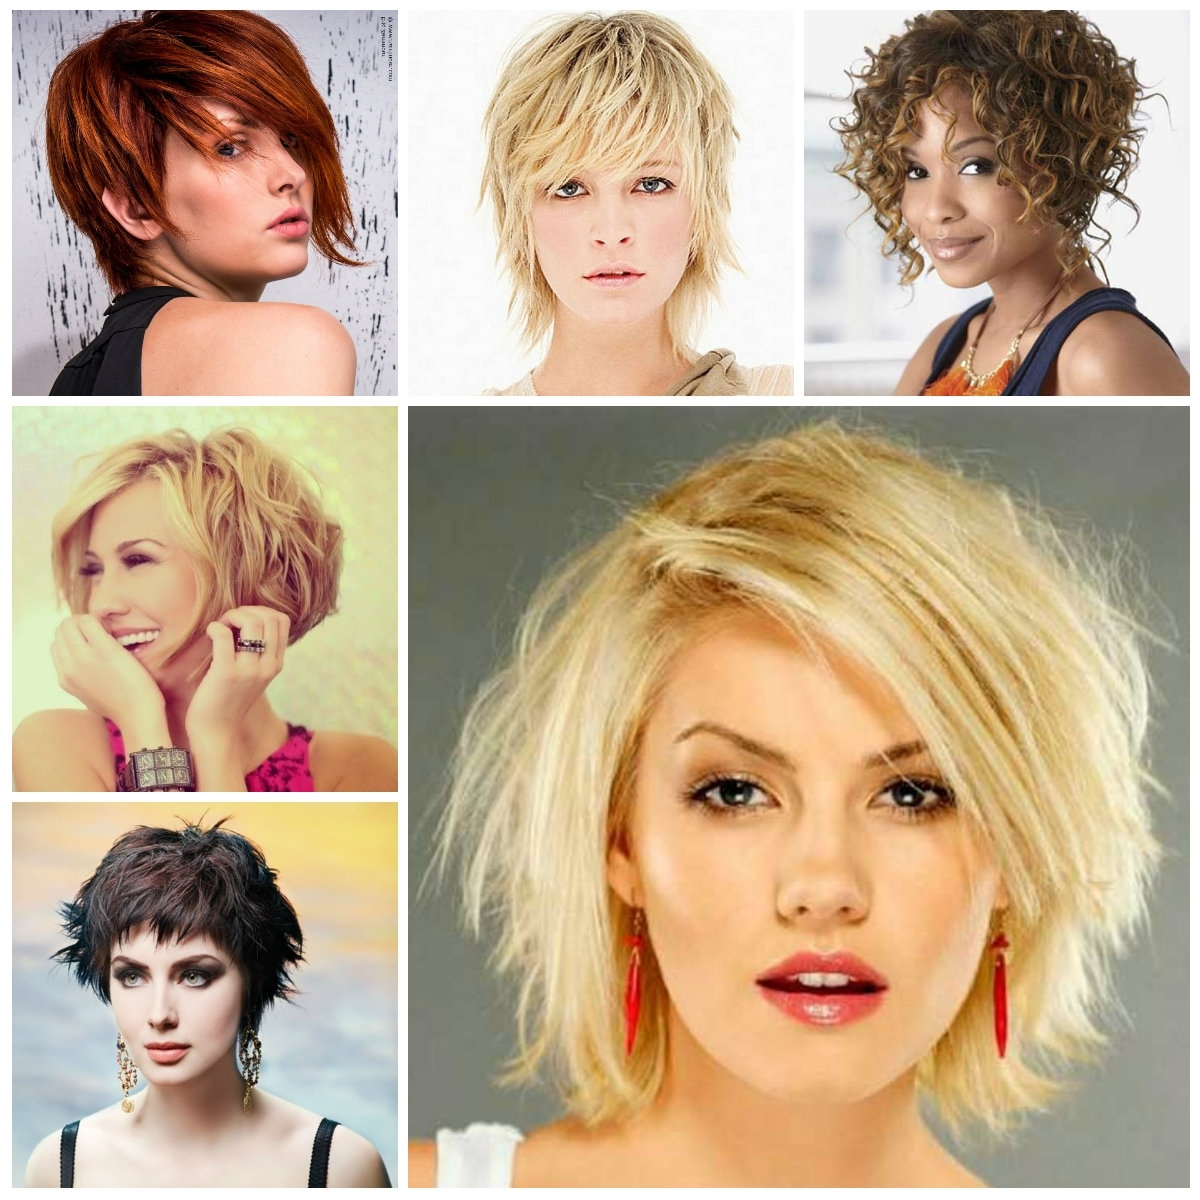 New Haircuts To Try For 2018 For Current Shaggy Messy Hairstyles (View 3 of 15)